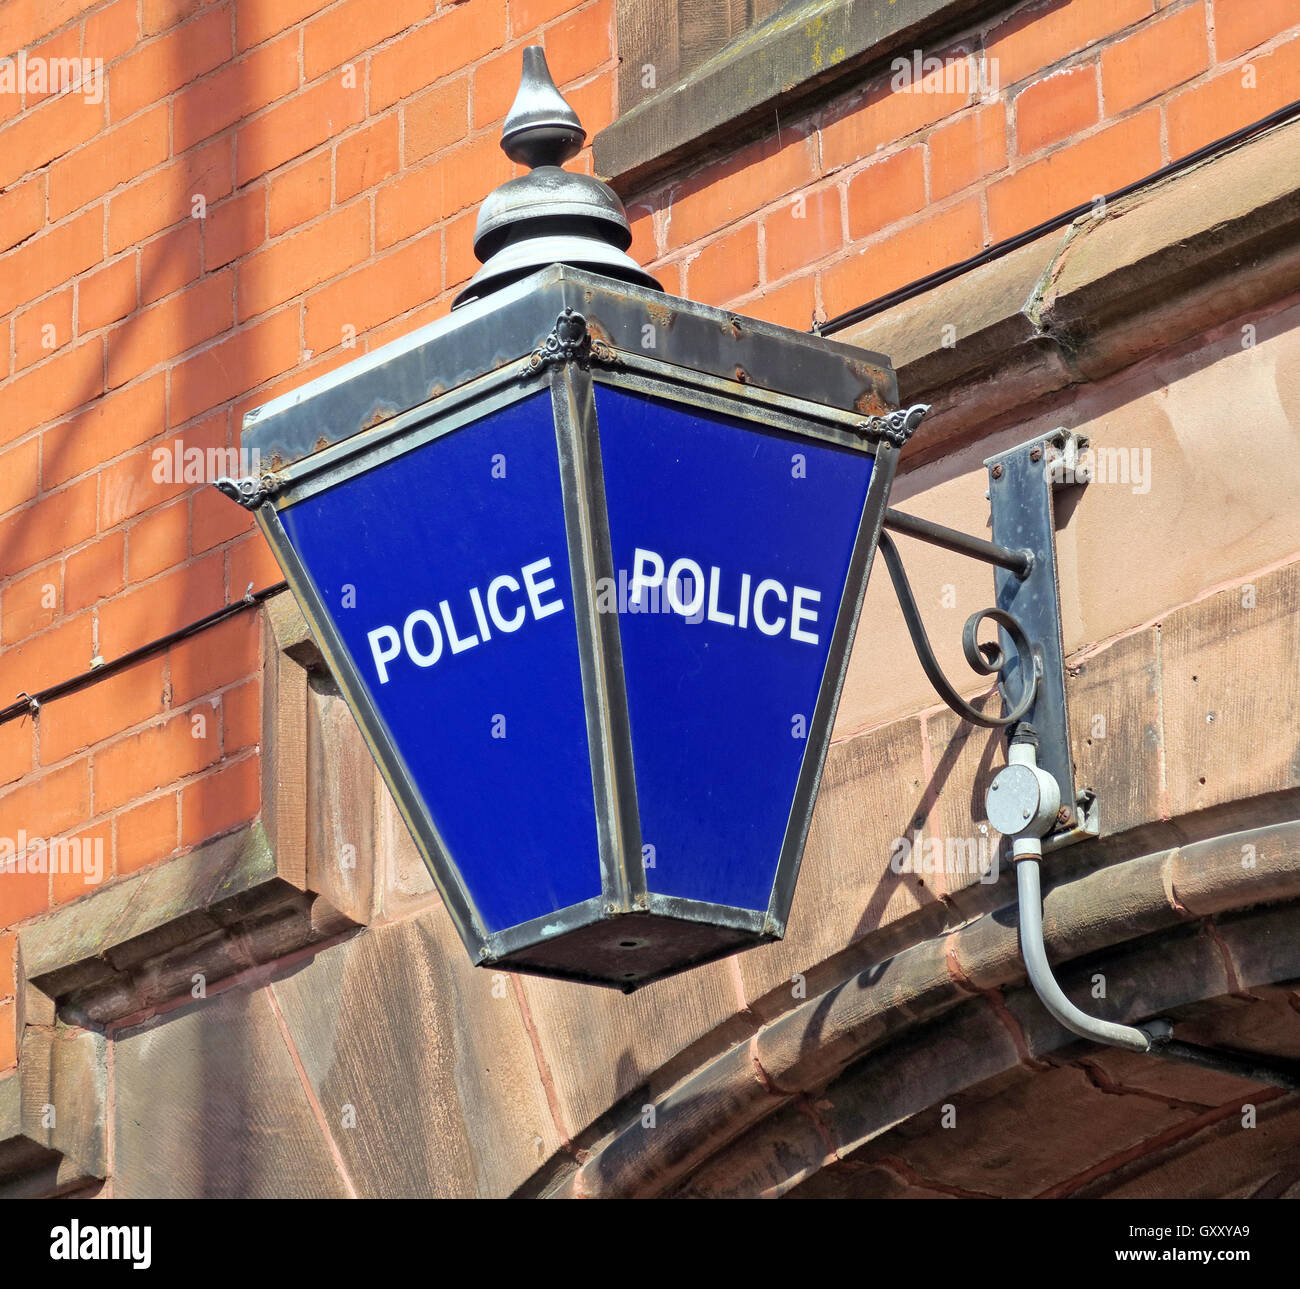 Constabulary,law,order,Warrington,Cheshire,stockton,heath,urban,metropolitan,peelers,architectural,architecture,classic,Chester,policestation,city,community,icon,light,policing,authority,bobbie,beat,bobbies,on,the,Police Station lamp,Police Station,British Police Station lamp,Stockton Heath,GoTonySmith,@HotpixUK,Tony,Smith,UK,GB,Great,Britain,United,Kingdom,English,British,England,cop,copper,fuzz,filth,screws,rozzer,sign,signpost,protection,safe,safety,justice,authority,force,legal,security,human,rights,emergency,service,services,999,111,old,City Centre,City,Centre,@hotpixUK,Buy Pictures of,Buy Images Of,Images of,Stock Images,Tony Smith,United Kingdom,Great Britain,British Isles,bobbies on the beat,on the beat,the filth,Human Rights,Emergency Services,Old Police Sign